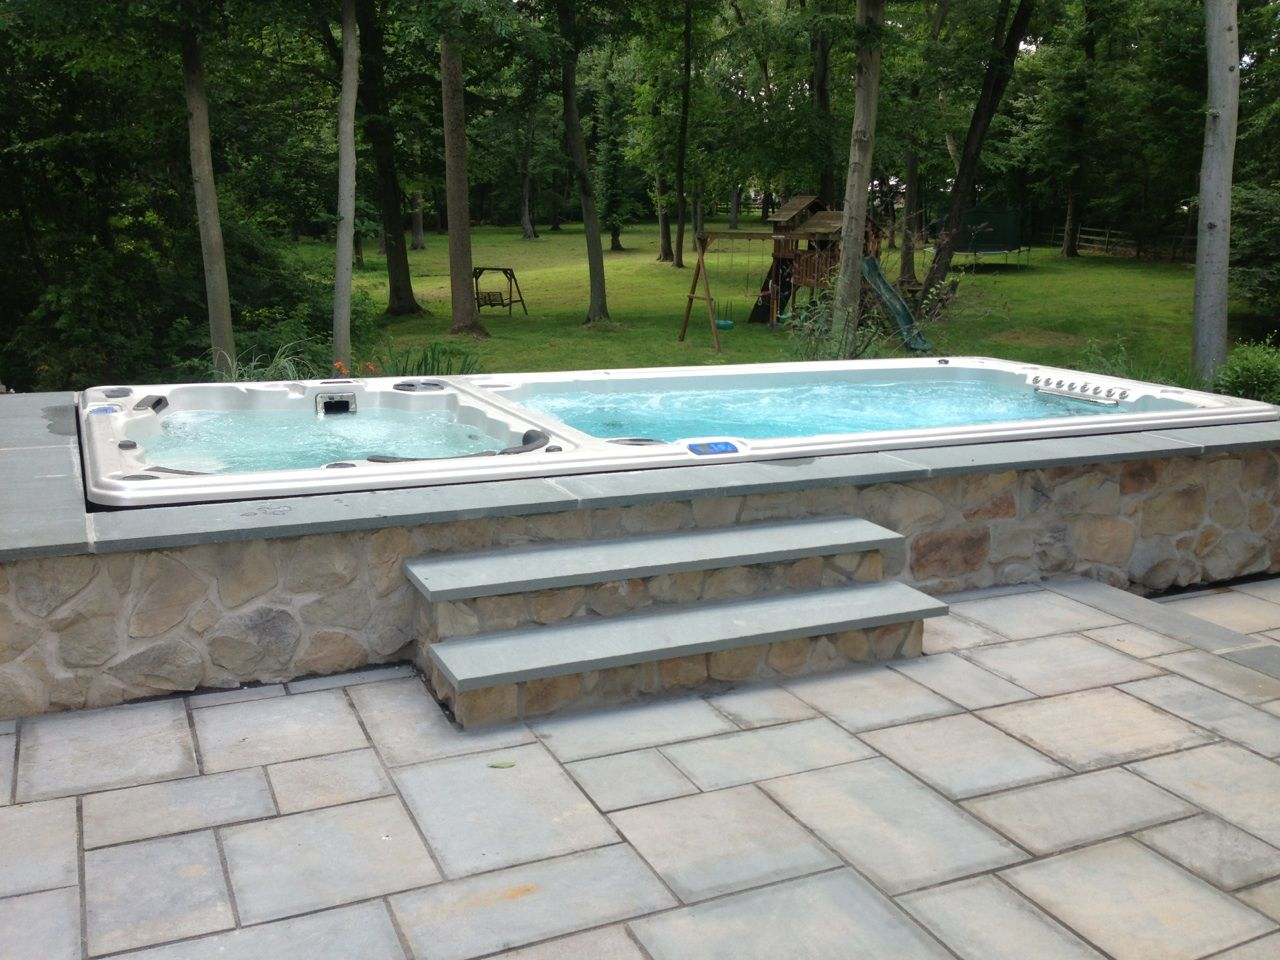 Hydropool Dual Temperature Swim Spa Installed In A Stone Enclosure Learn More About Hydropool Self Cleaning Swi Hot Tub Swim Spa Swim Spa Swim Spa Landscaping